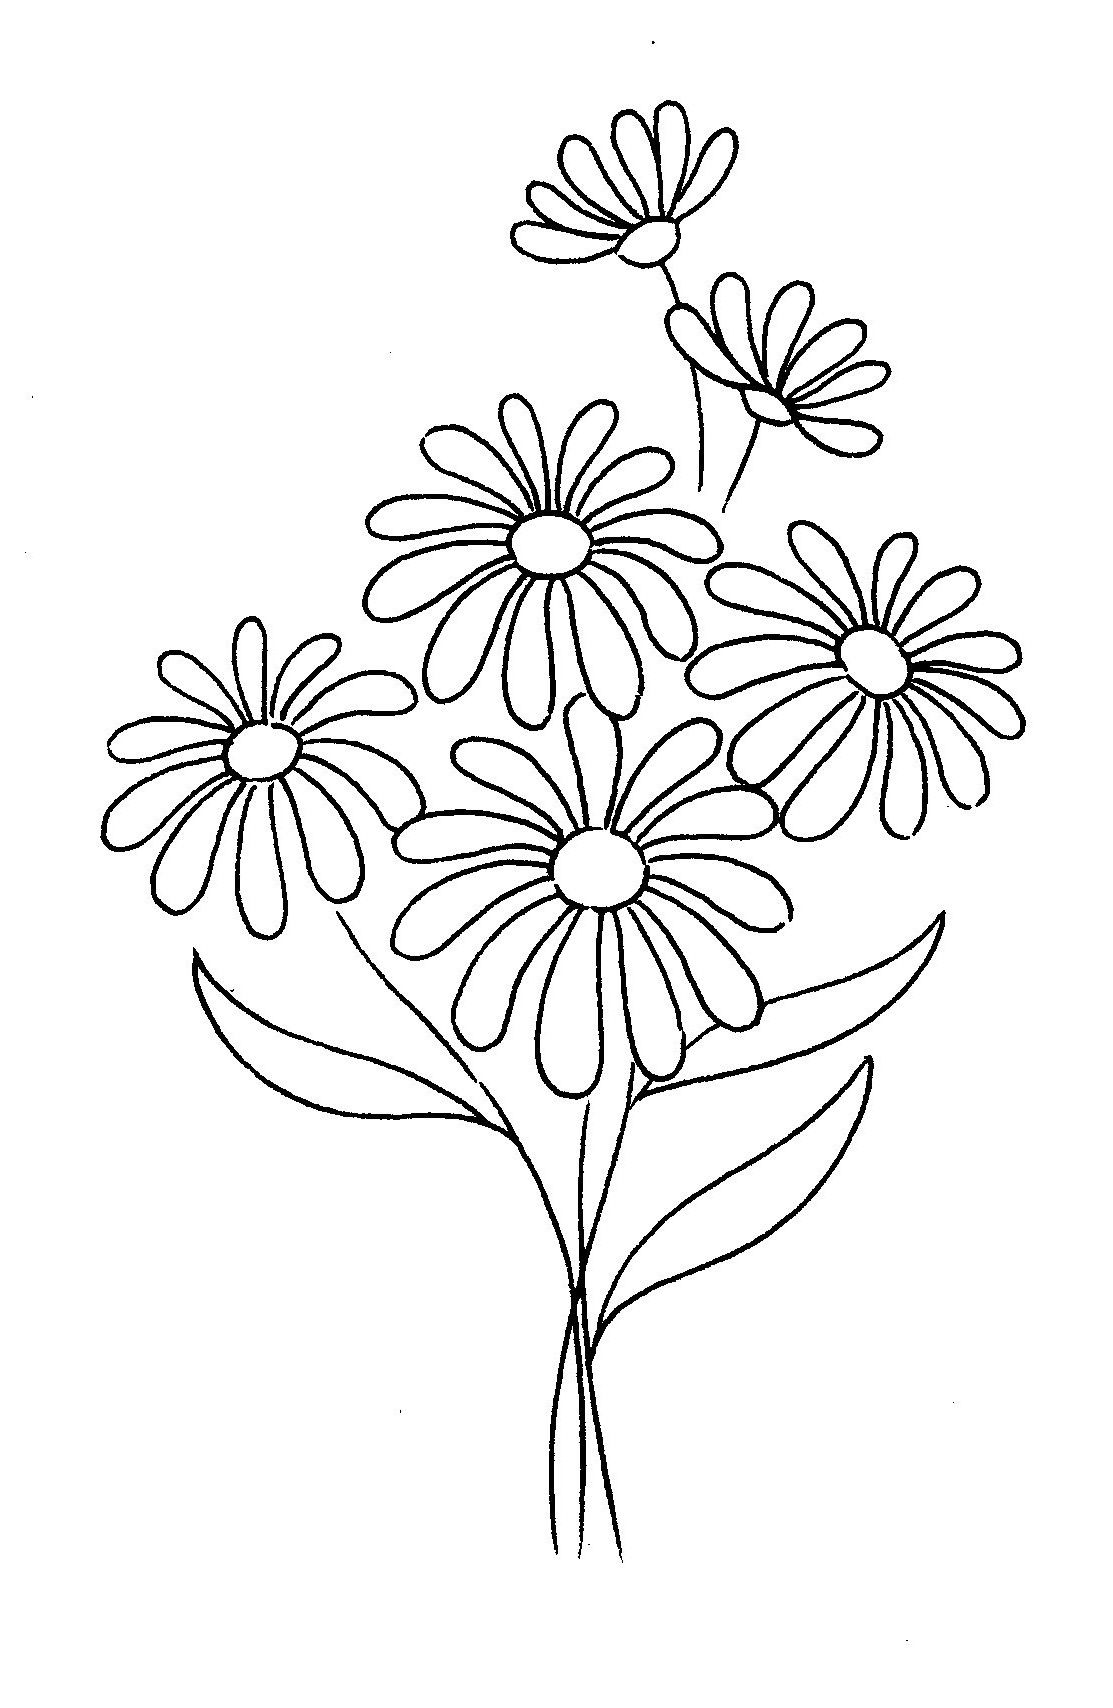 1113x1708 Tumblr Flower Drawing Daisy Daisies Drawing Tumblr Daisy Doodle